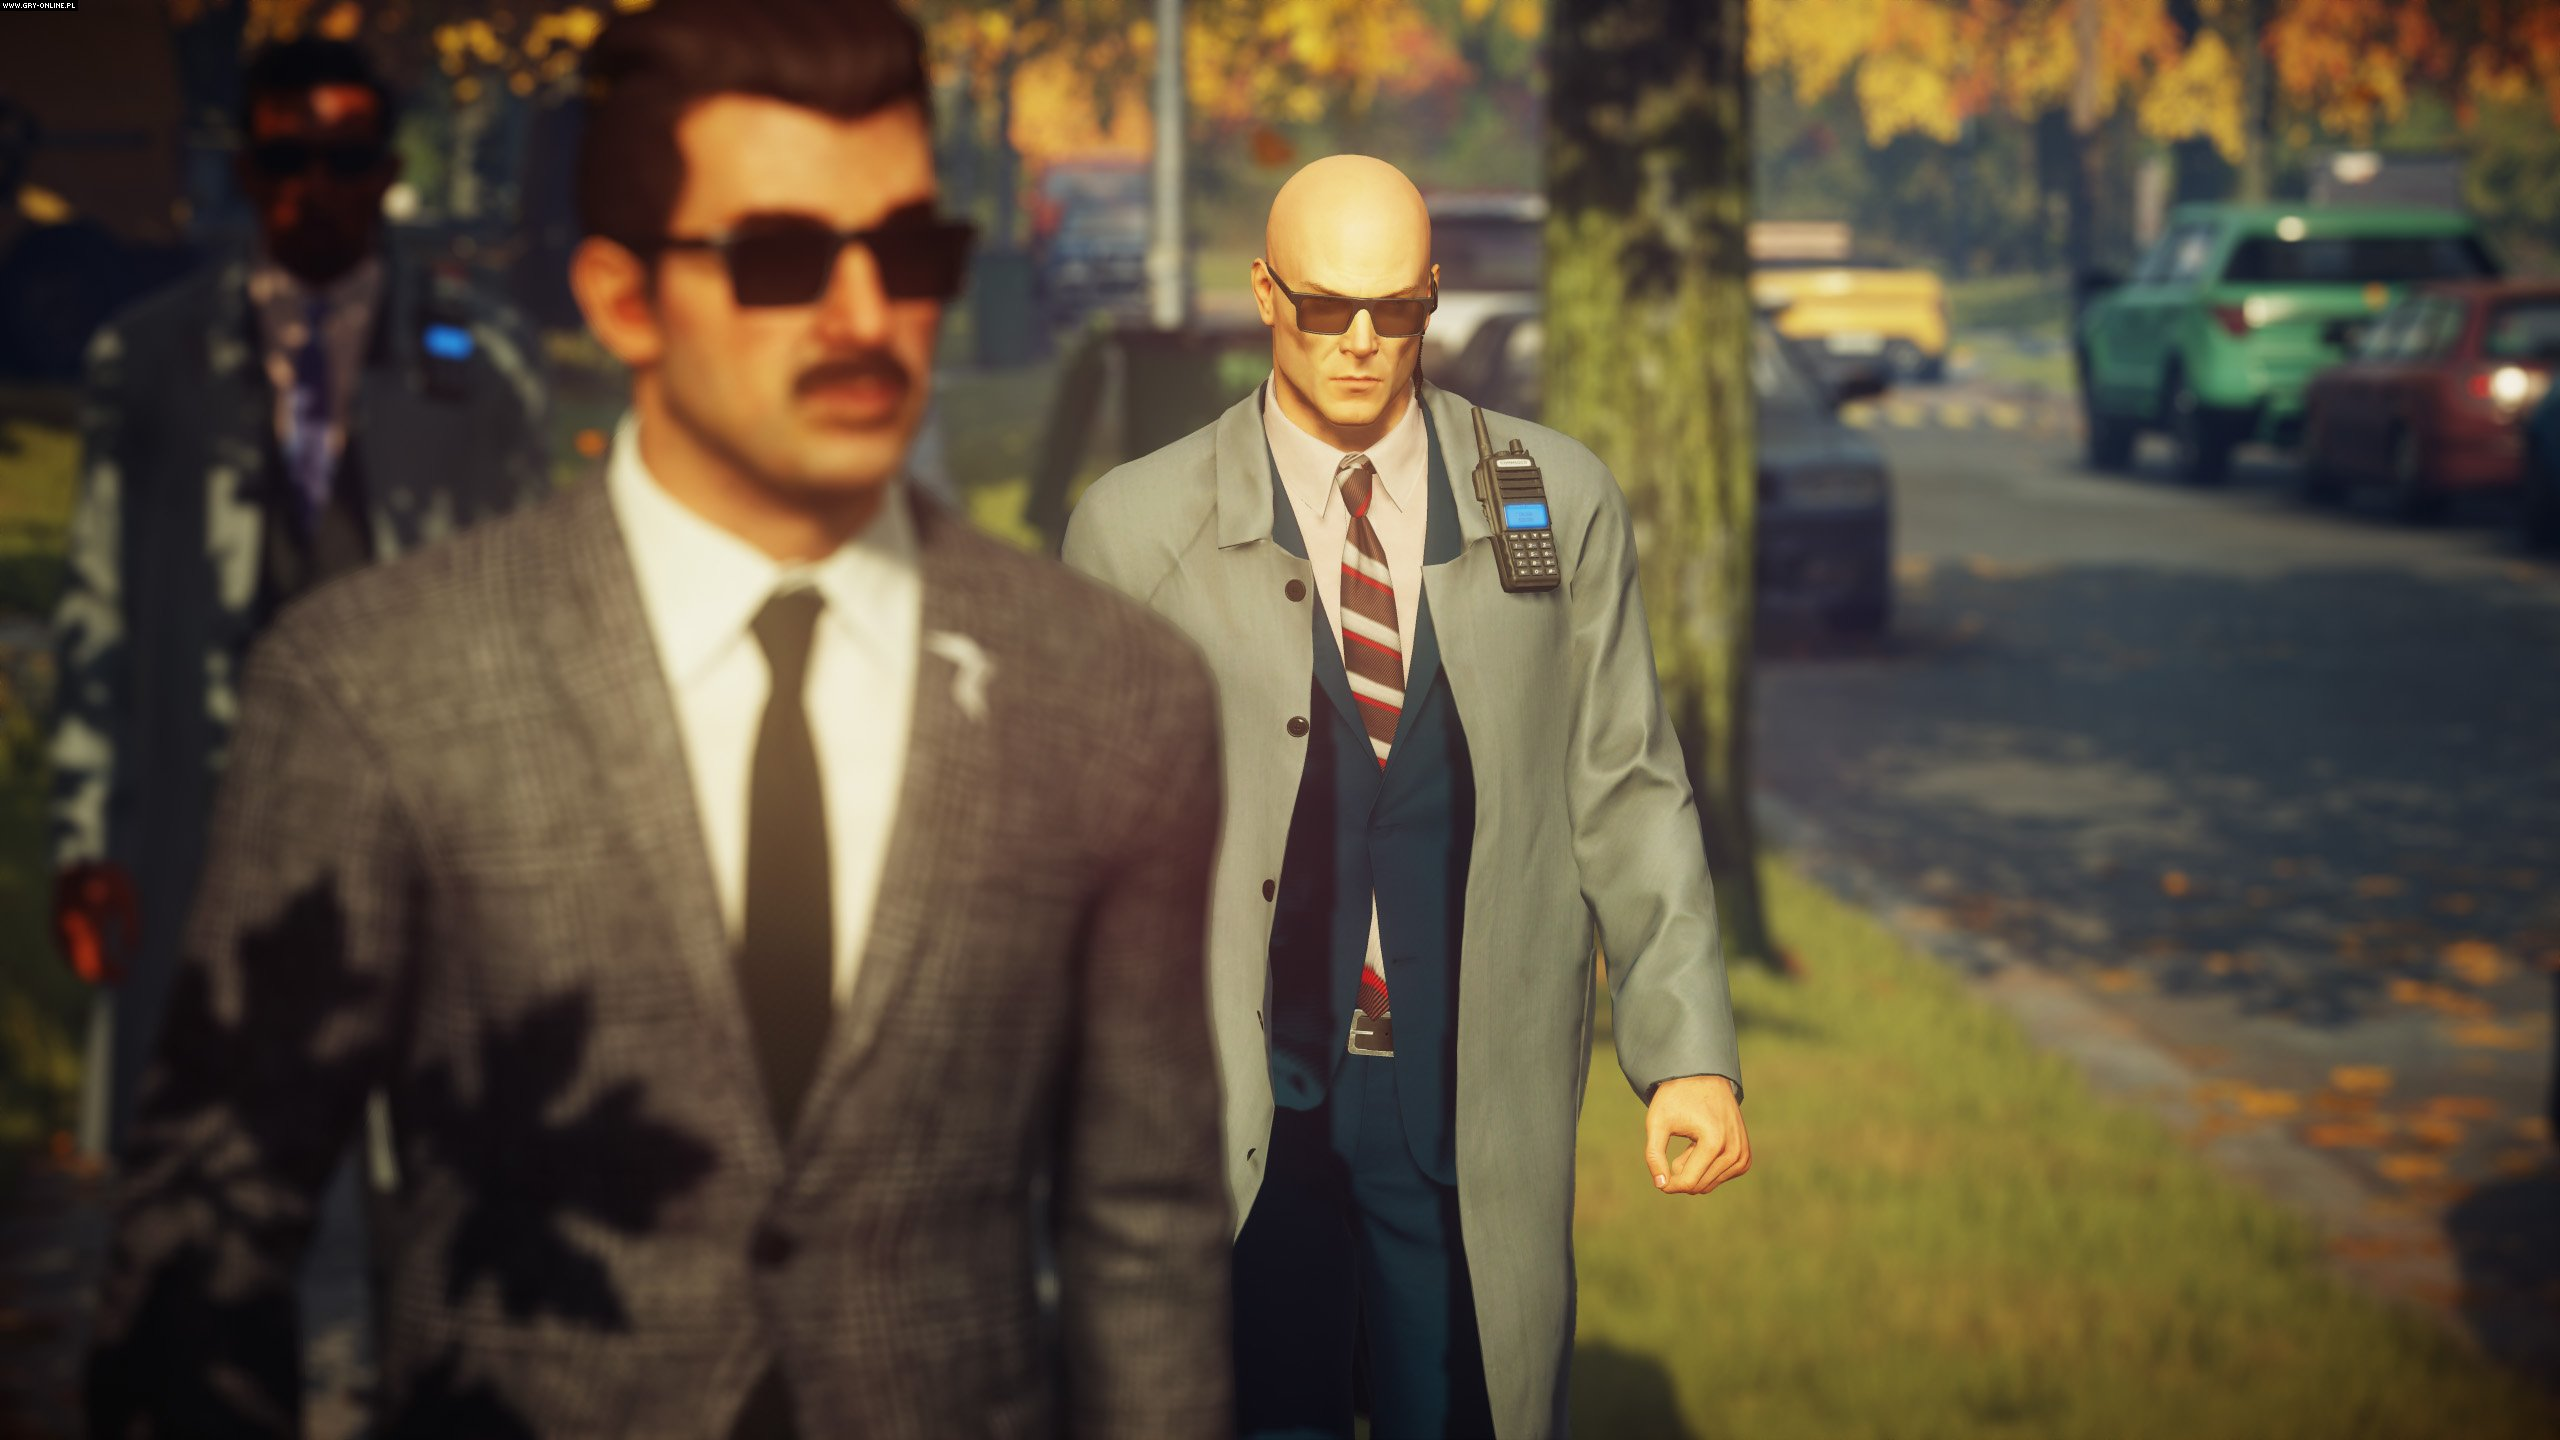 Hitman 2 PC, PS4, XONE Games Image 3/26, IO Interactive, Warner Bros. Interactive Entertainment